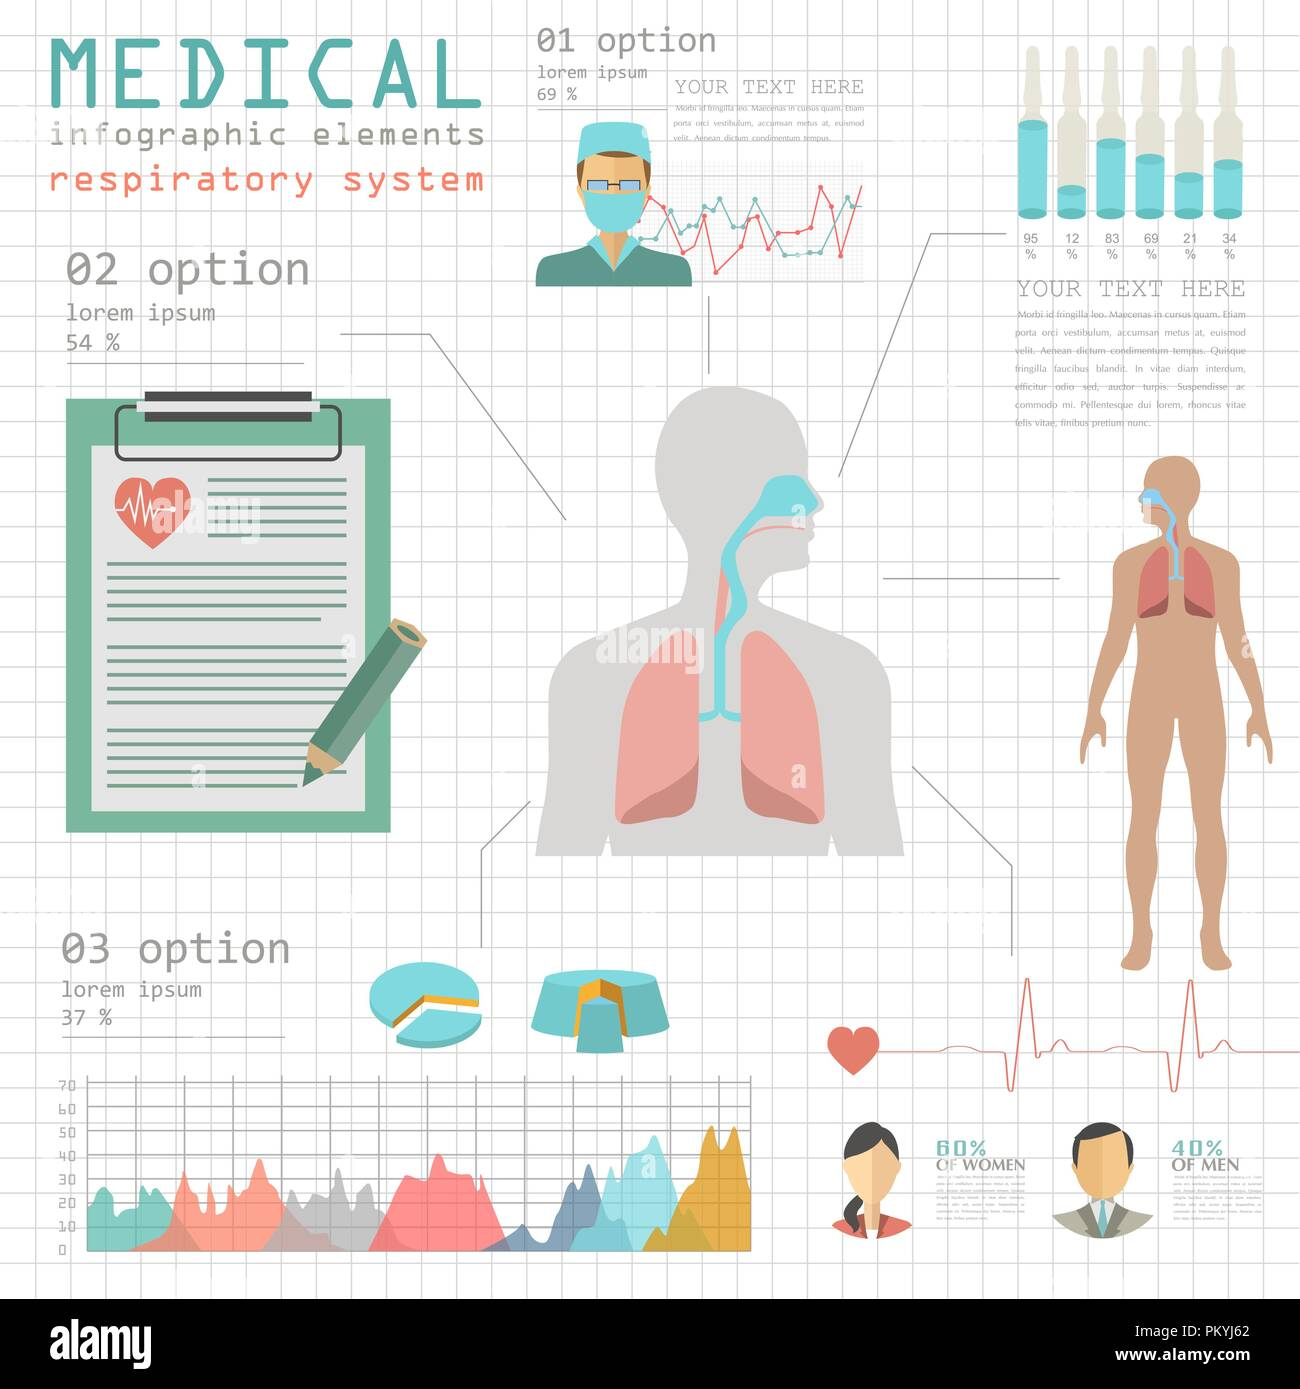 Medical and healthcare infographic, respiratory system infographics. Vector illustration - Stock Image